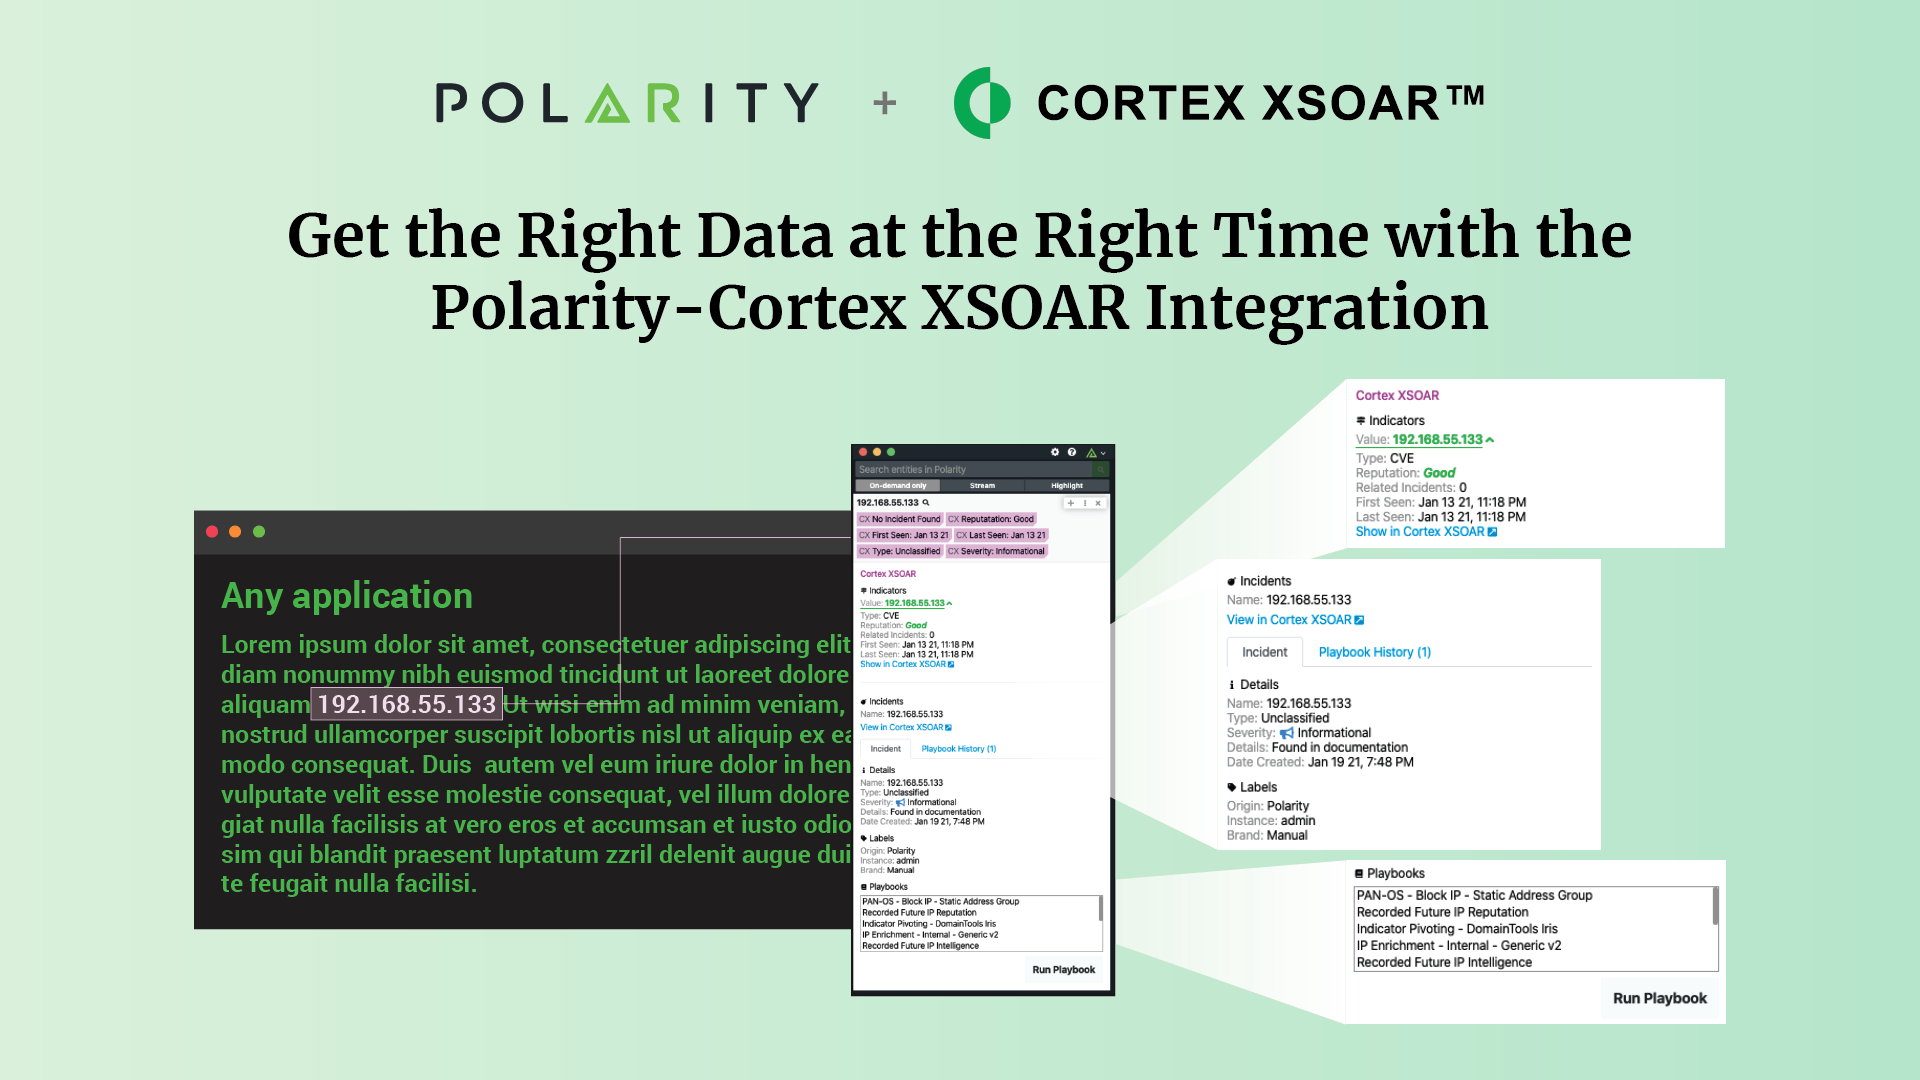 Get the Right Data at the Right Time with the Polarity-Cortex XSOAR Integration cover image